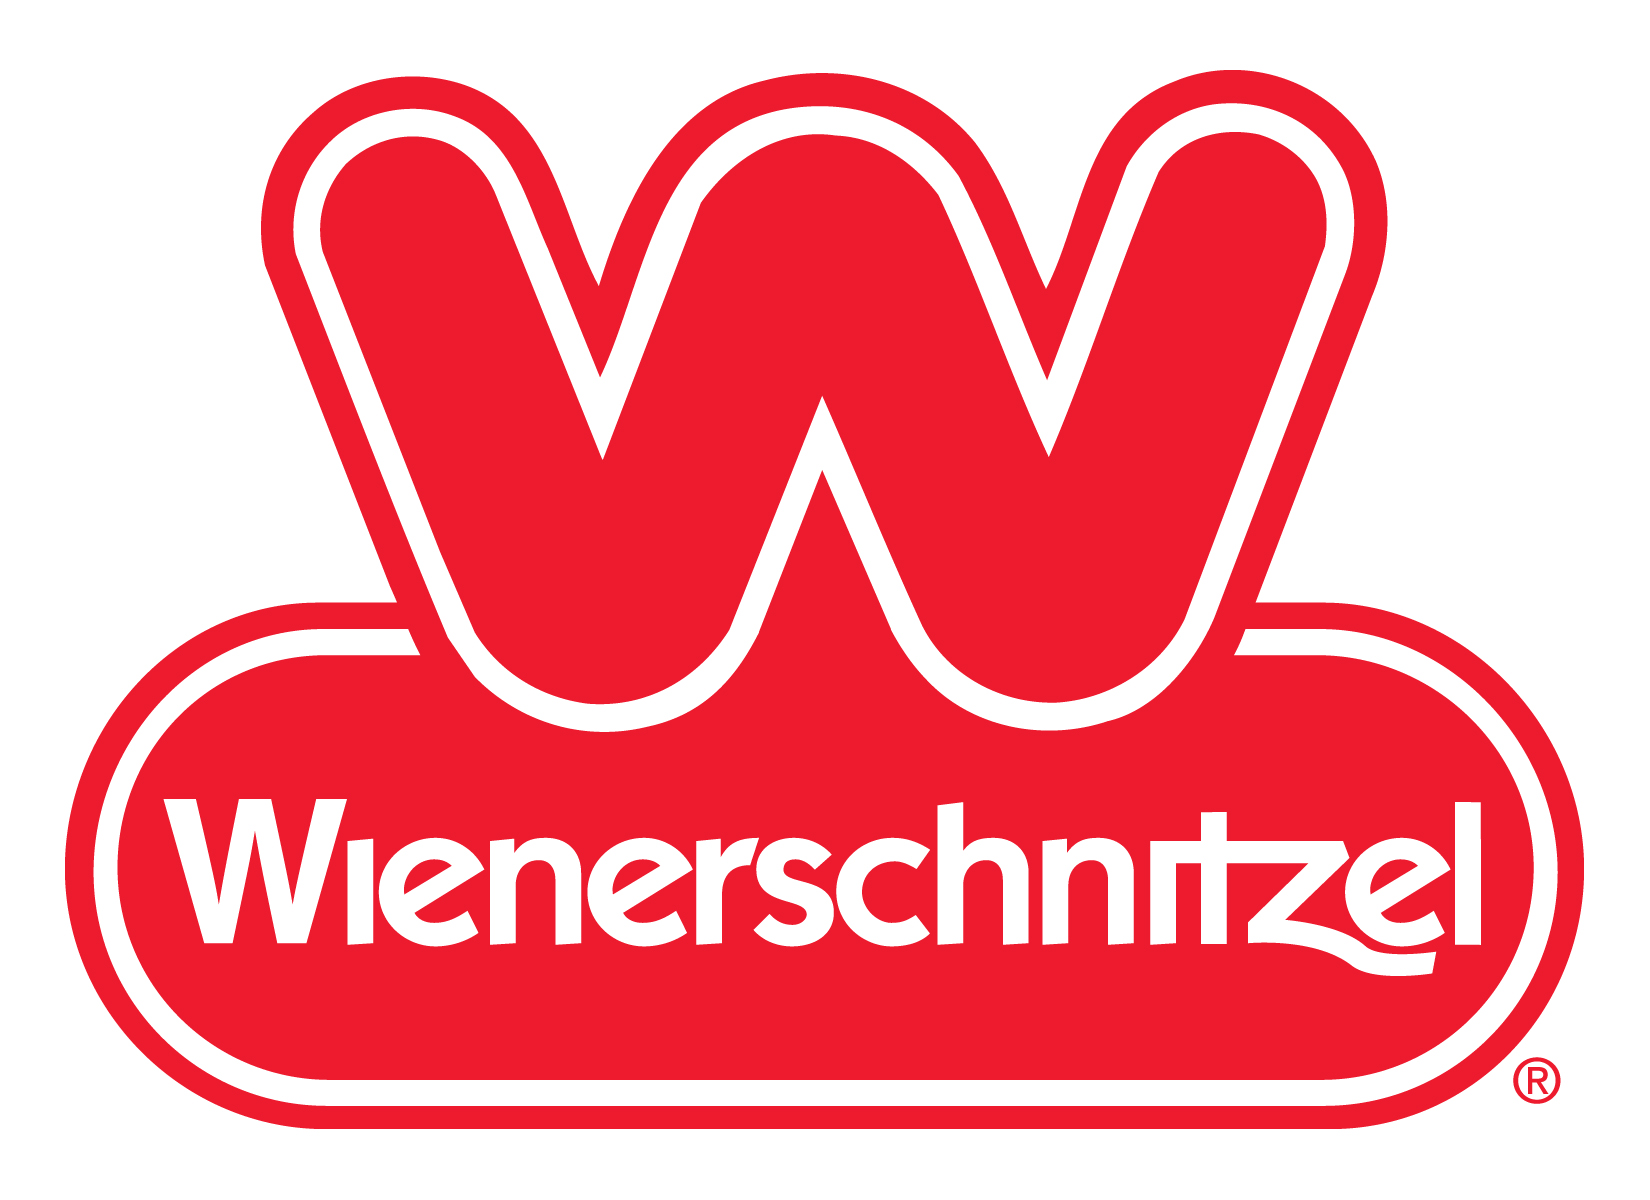 Wienerschnitzel Hot Dog Mascot